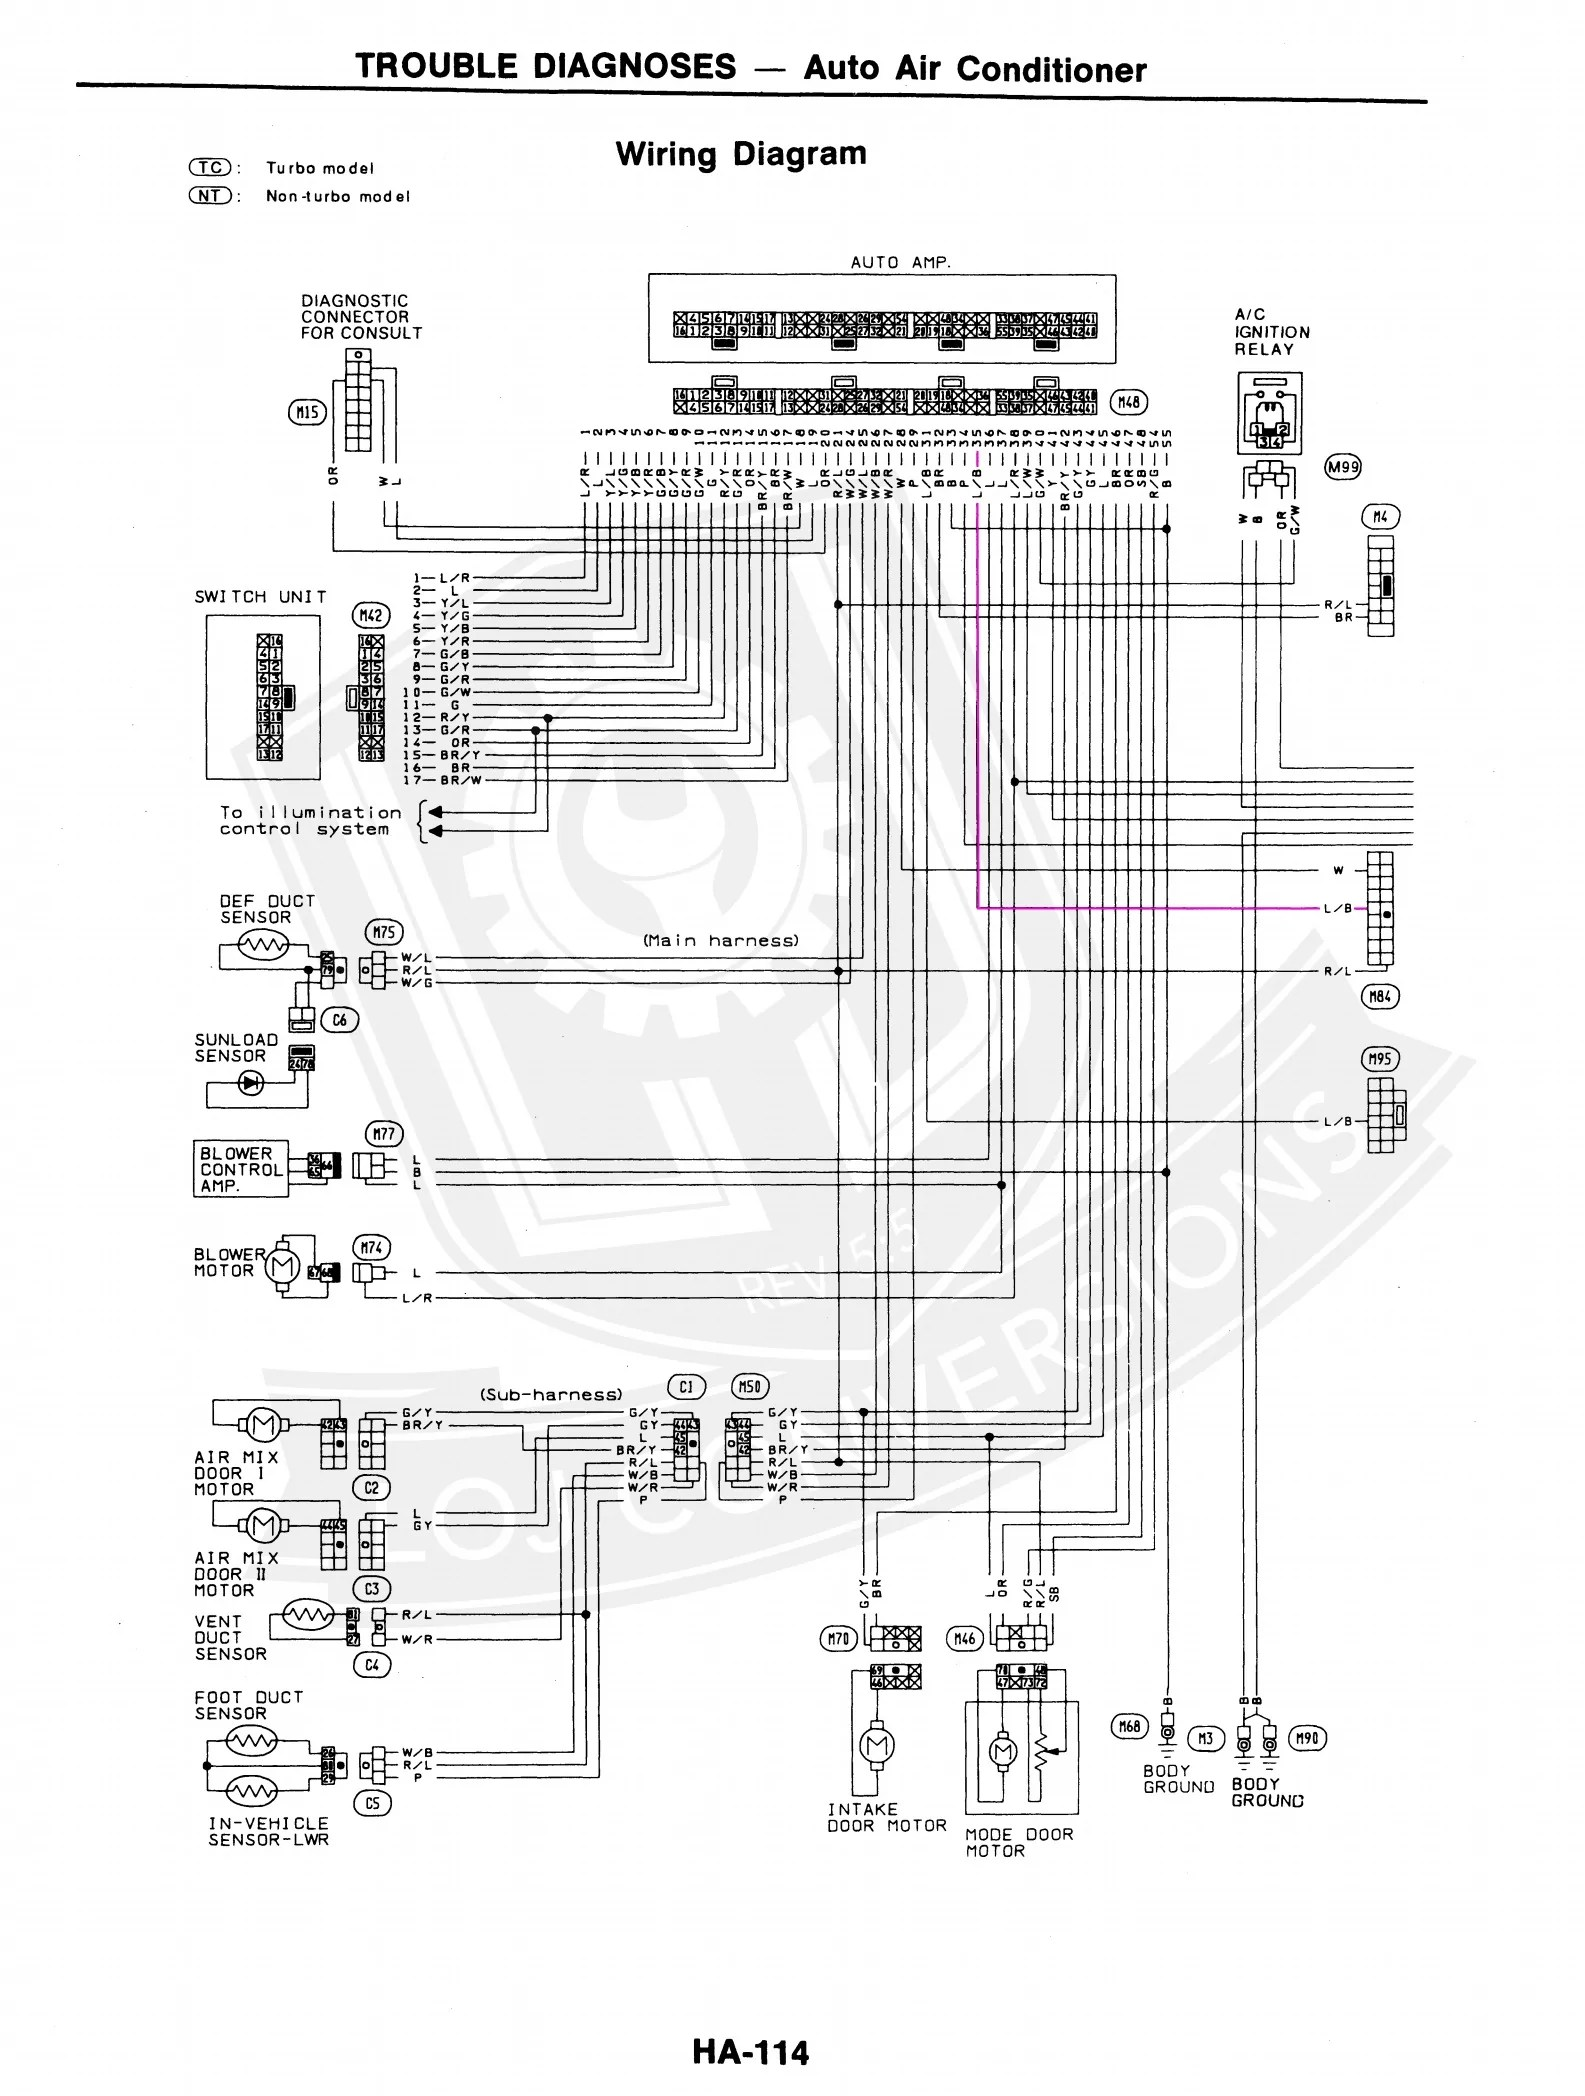 medium resolution of wiring the ac in a 300zx engine conversion loj conversions 1987 nissan 300zx engine diagram 1992 300zx engine wiring diagram